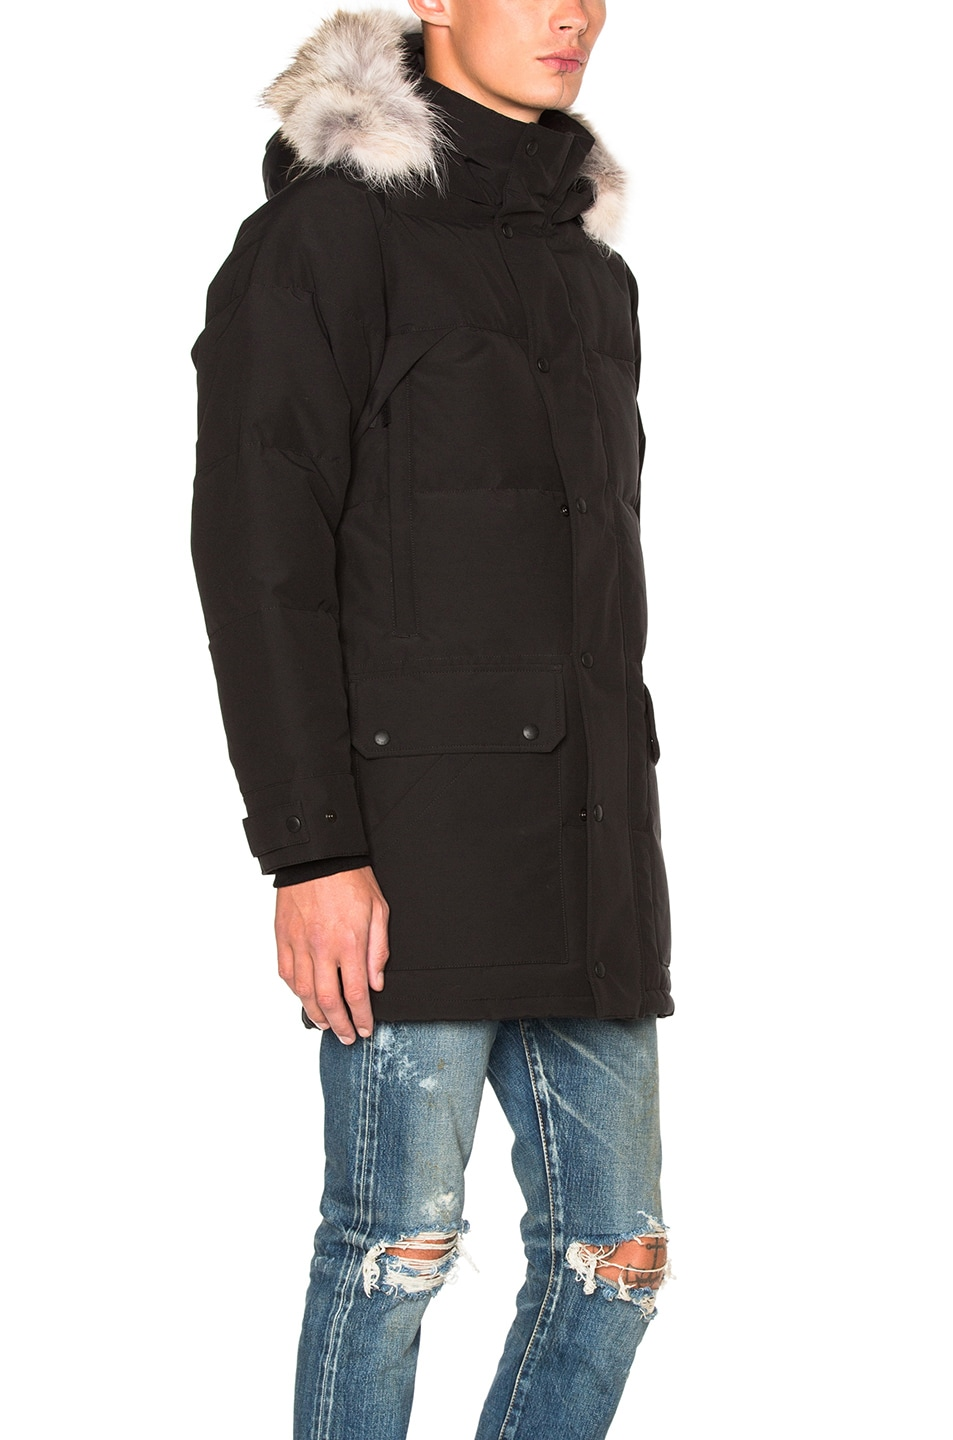 45e373f3a1e4d Image 4 of Canada Goose Emory Parka with Coyote Fur in Black